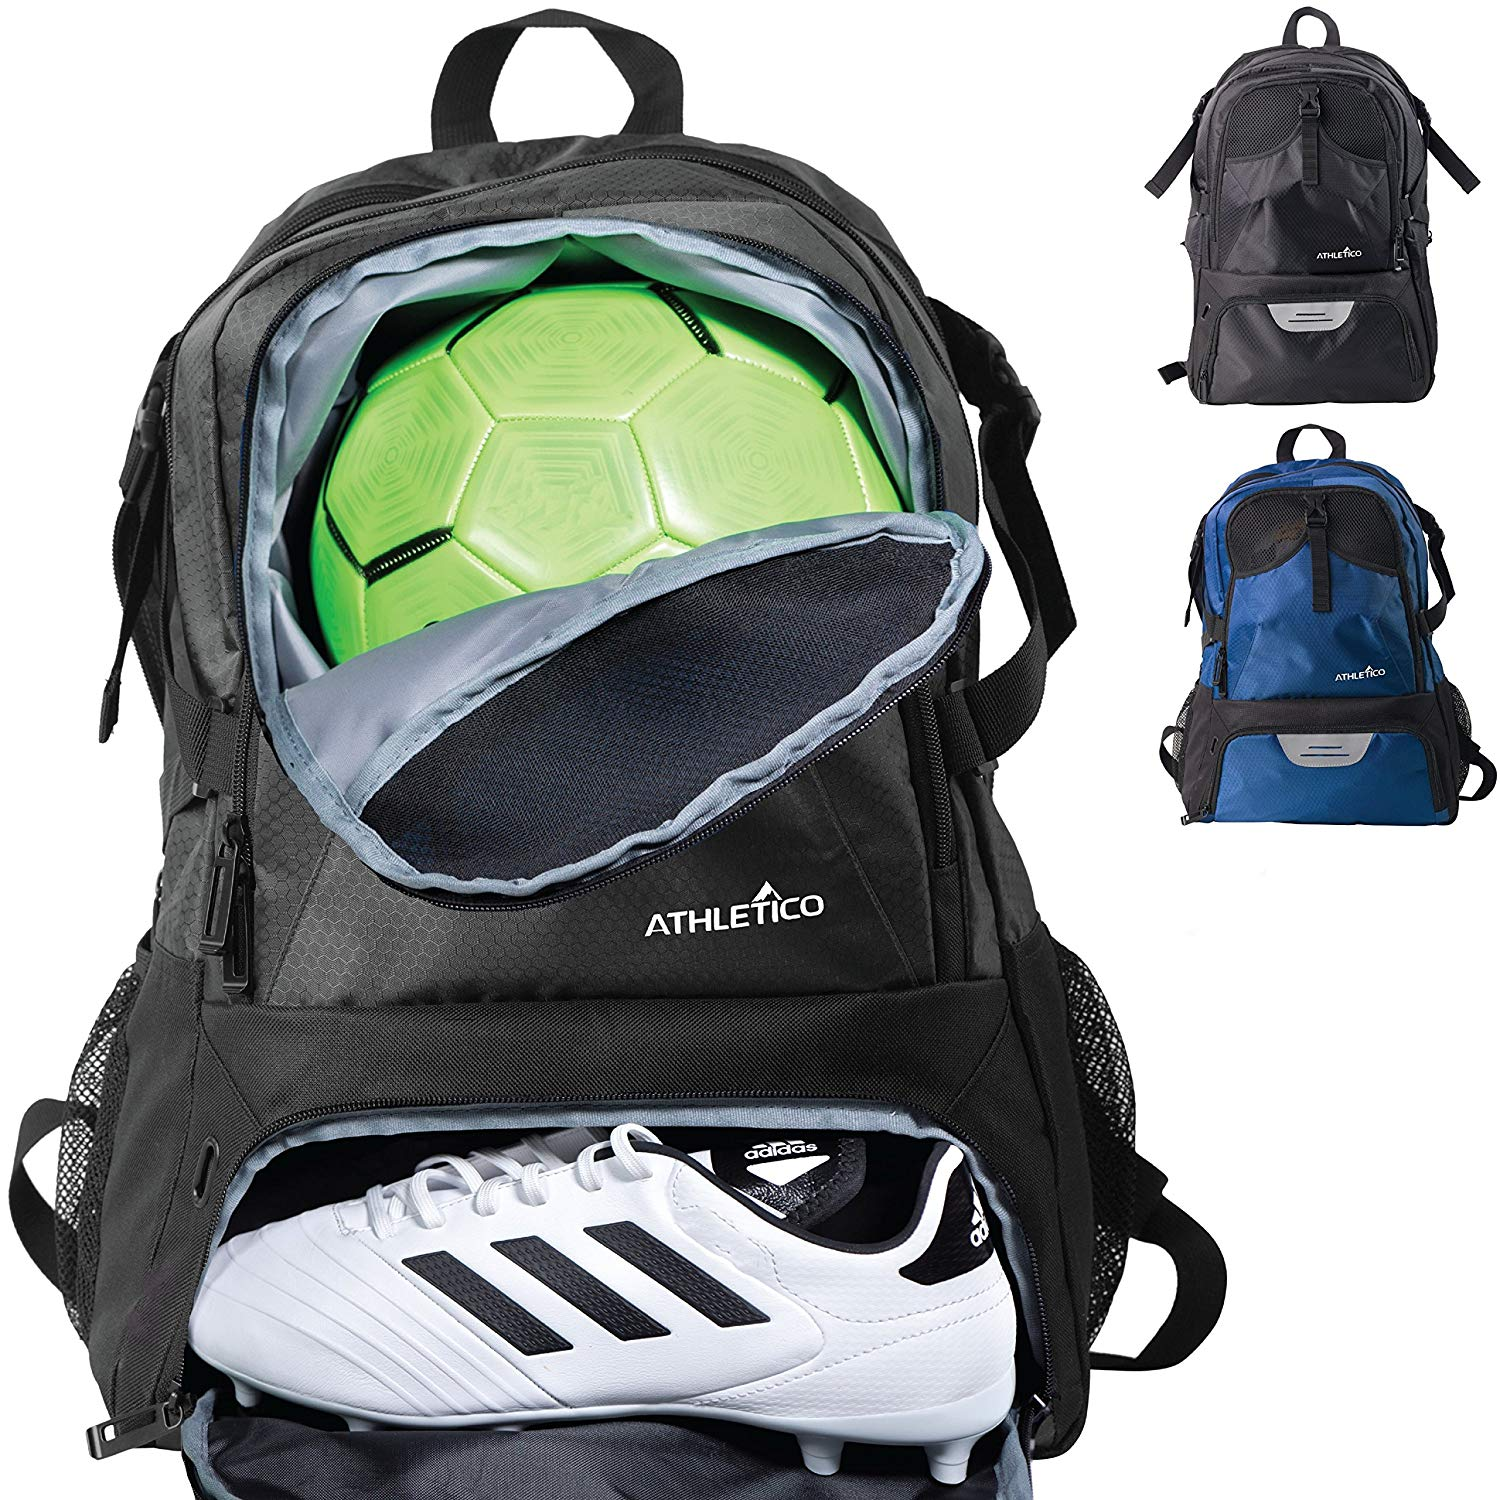 Athletico National Soccer Bag